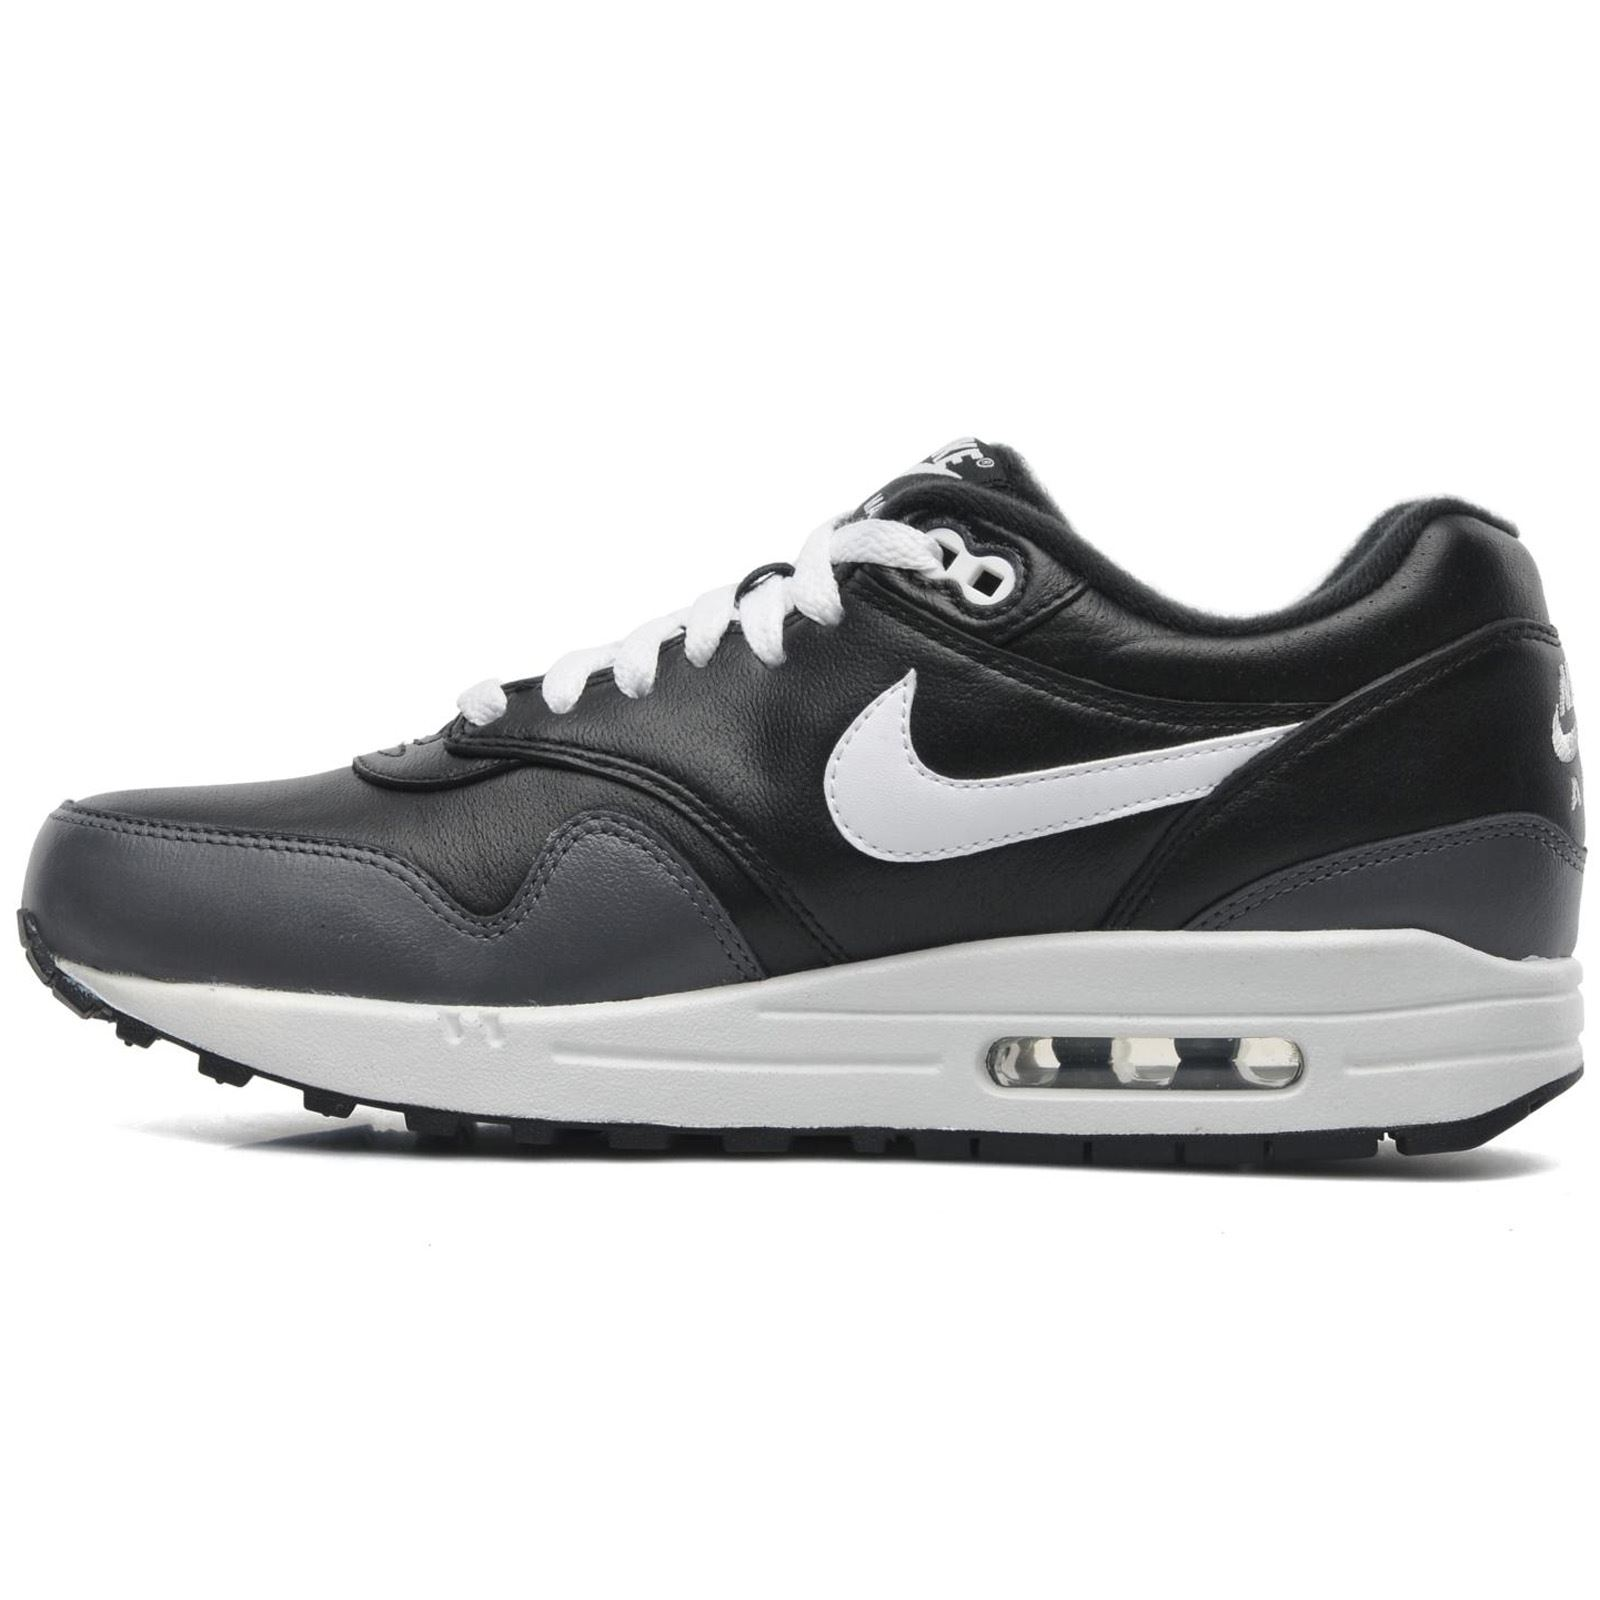 lndej Nike Air Max 1 LTR Leather Mens Trainers | eBay